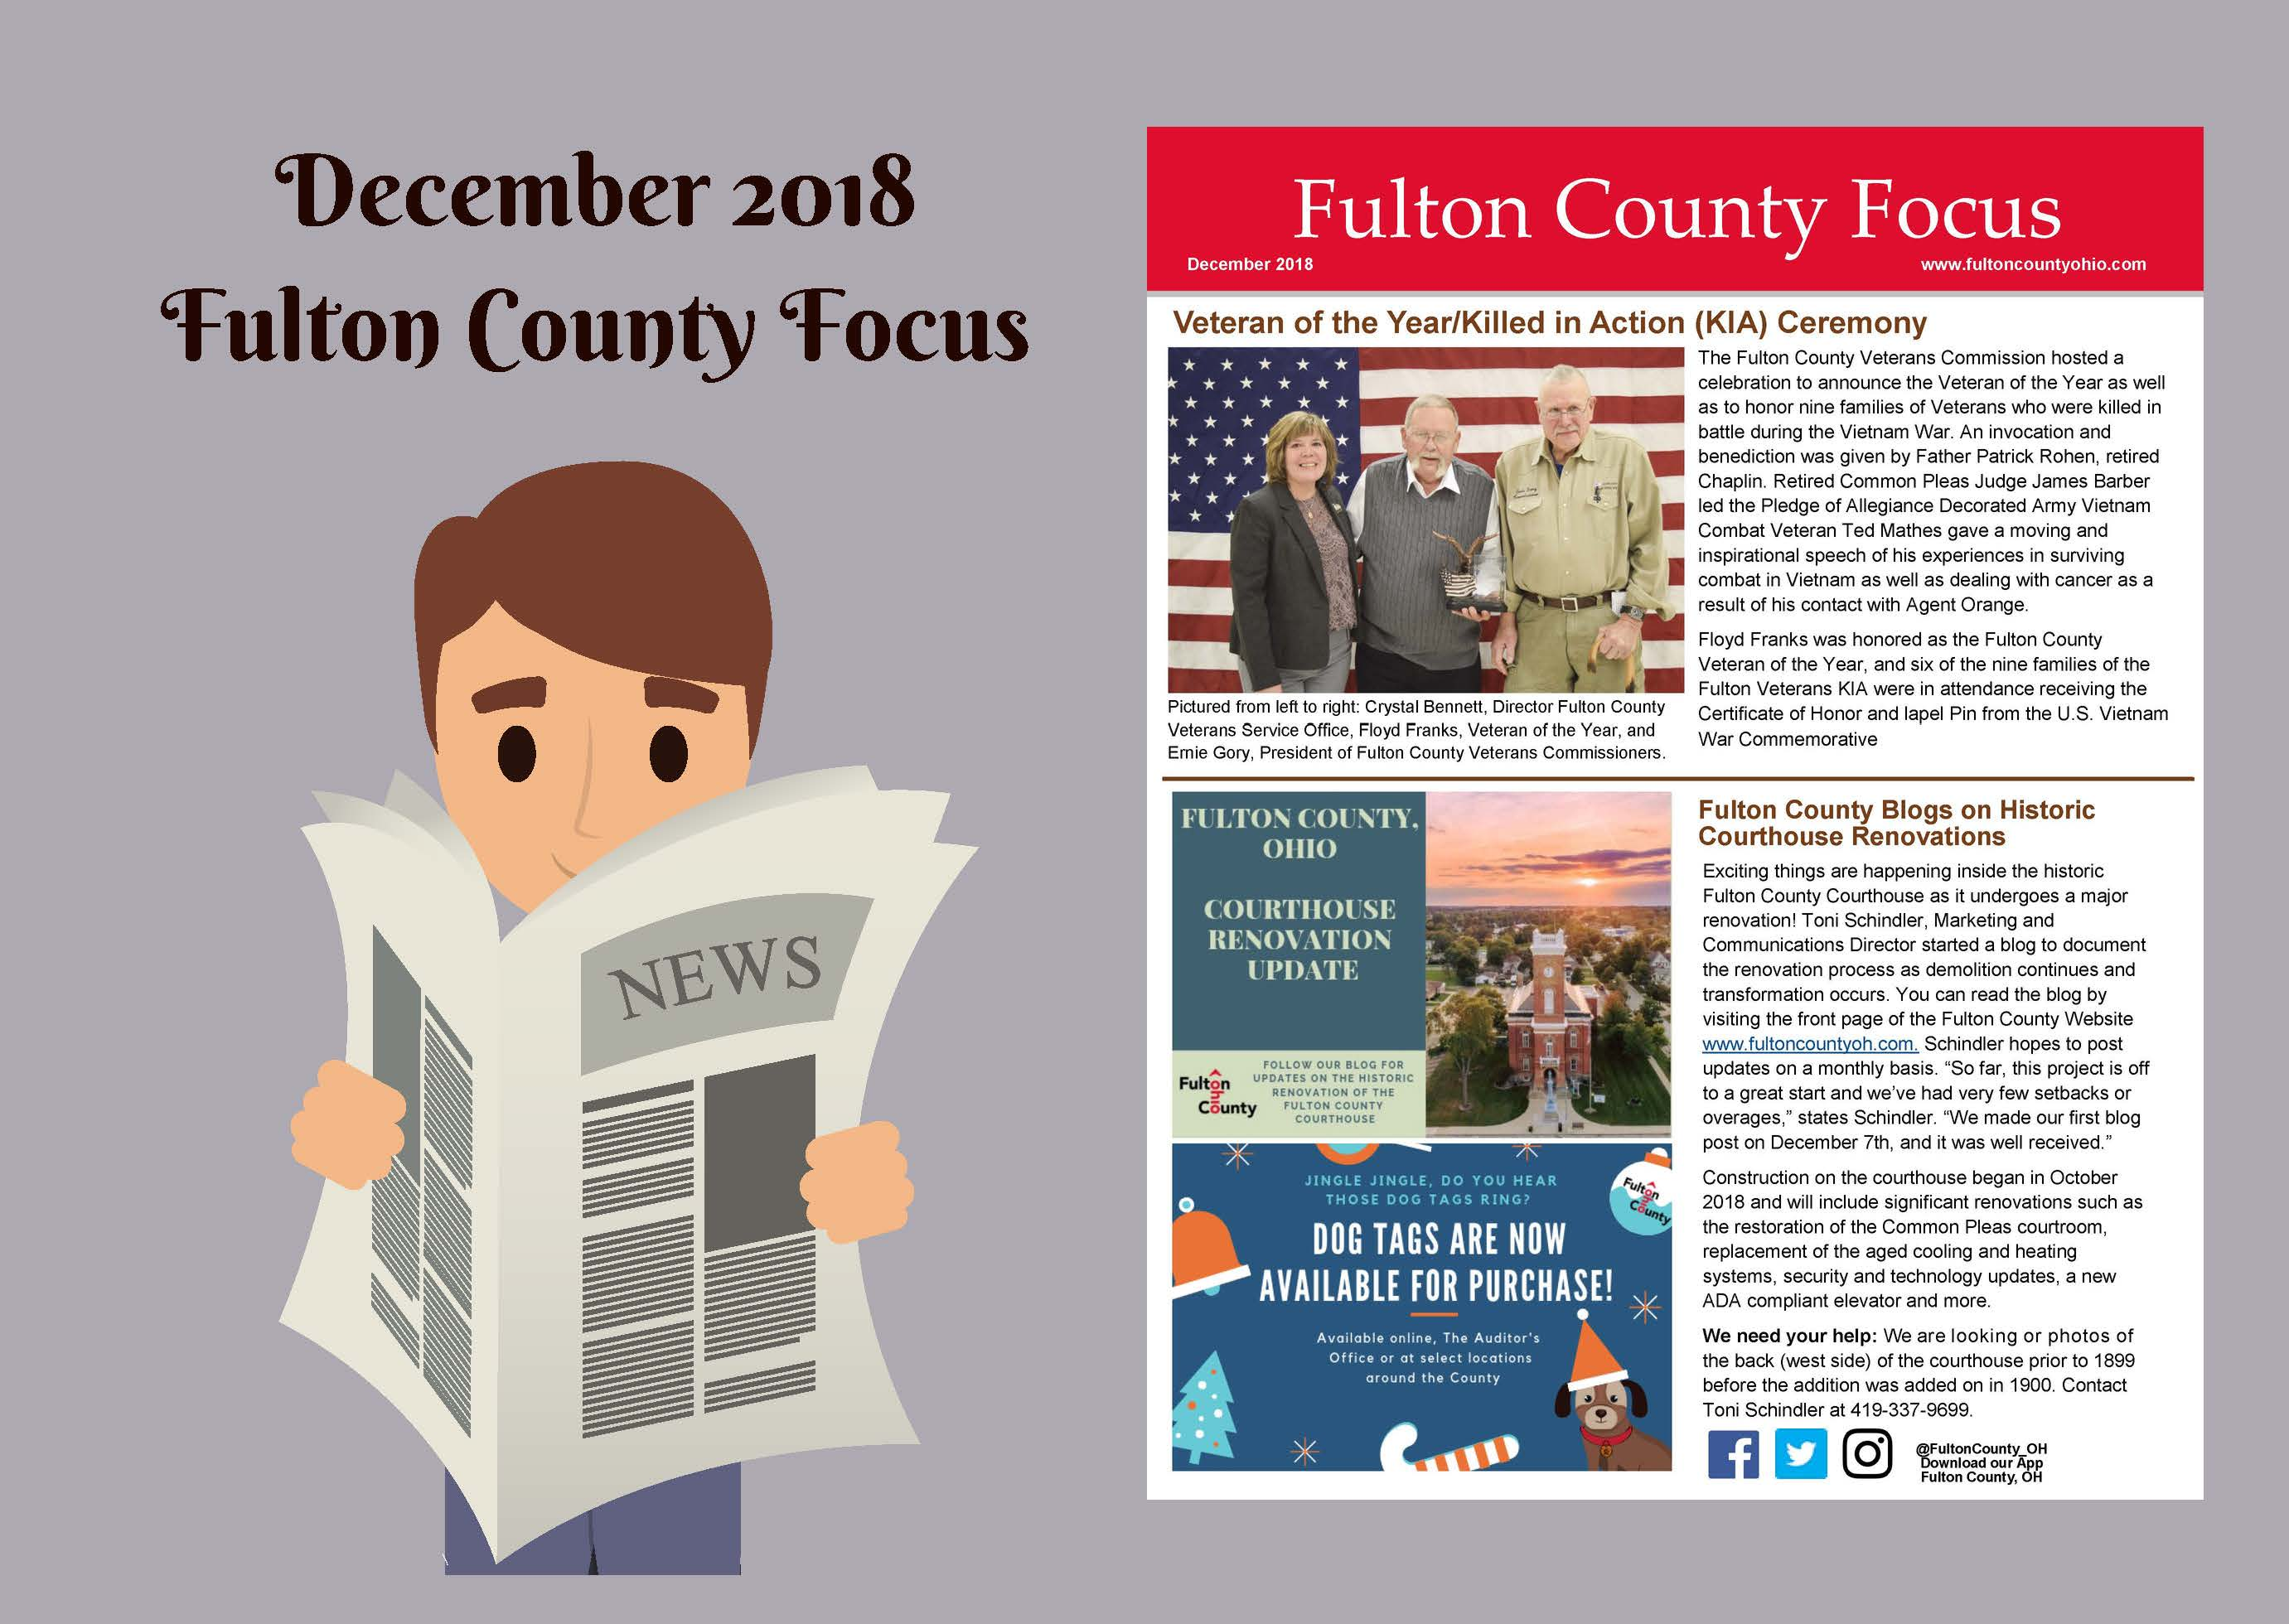 Website Image for the December 2018 Fulton County Focus